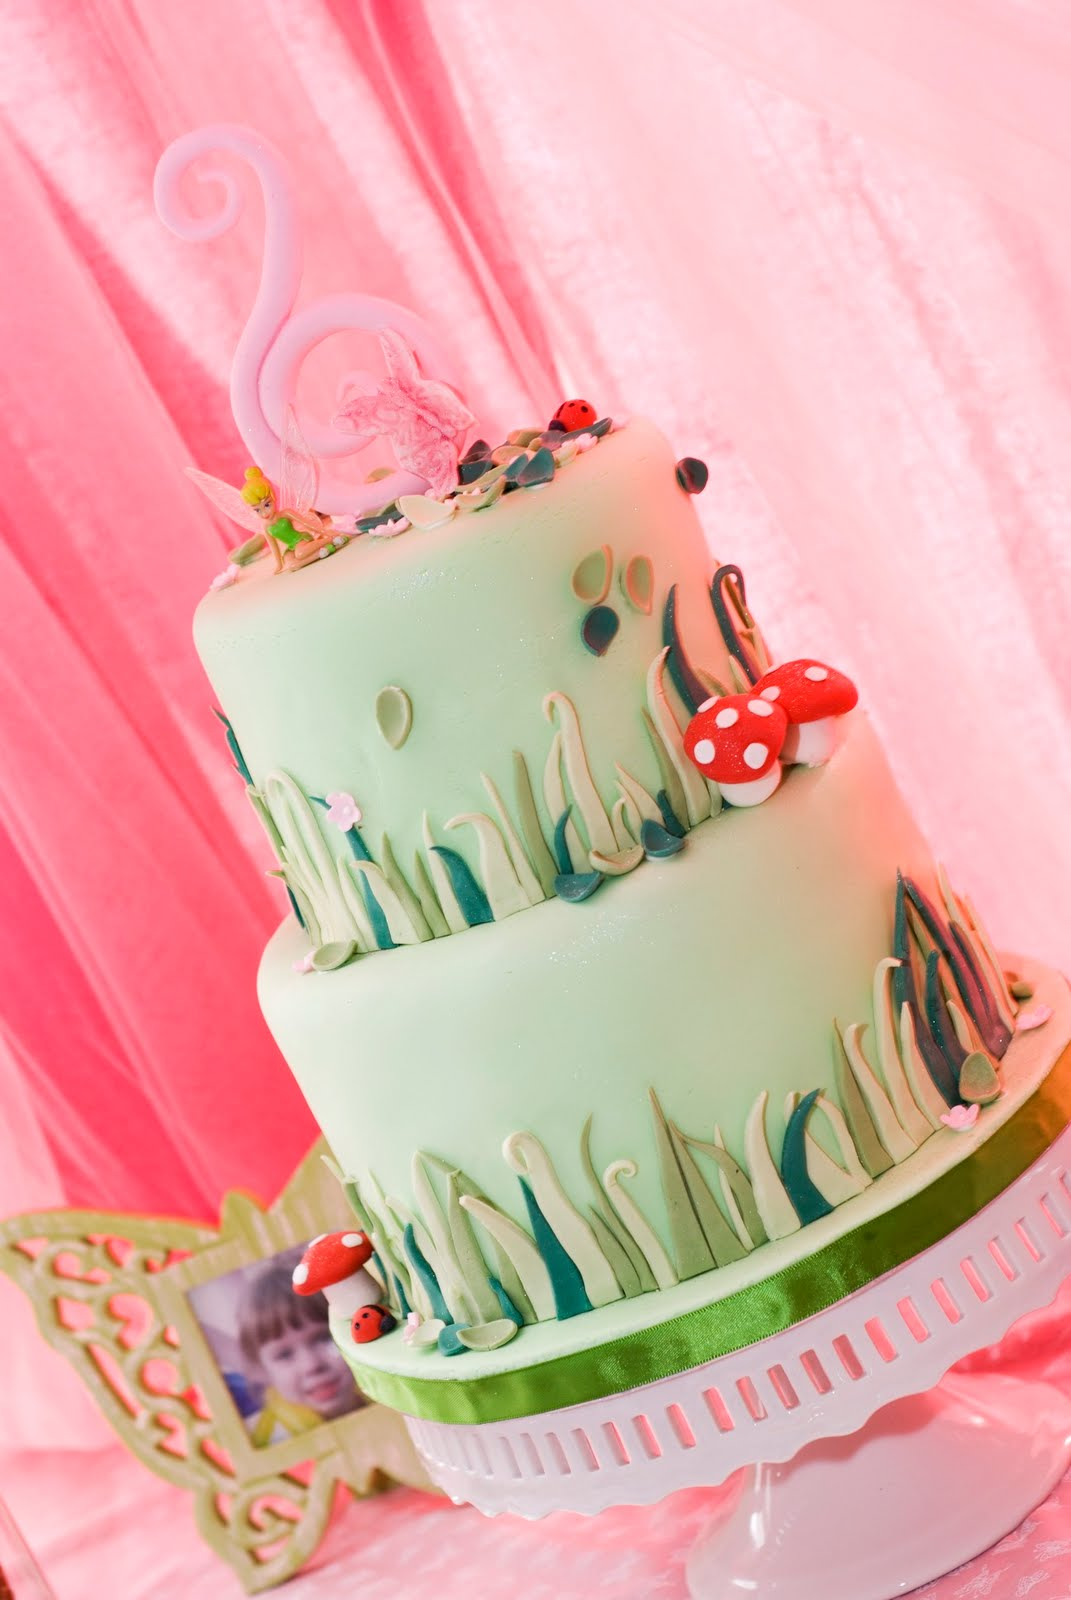 Candy And Cake Welcome To Pixie Hollow Janelle S 6th